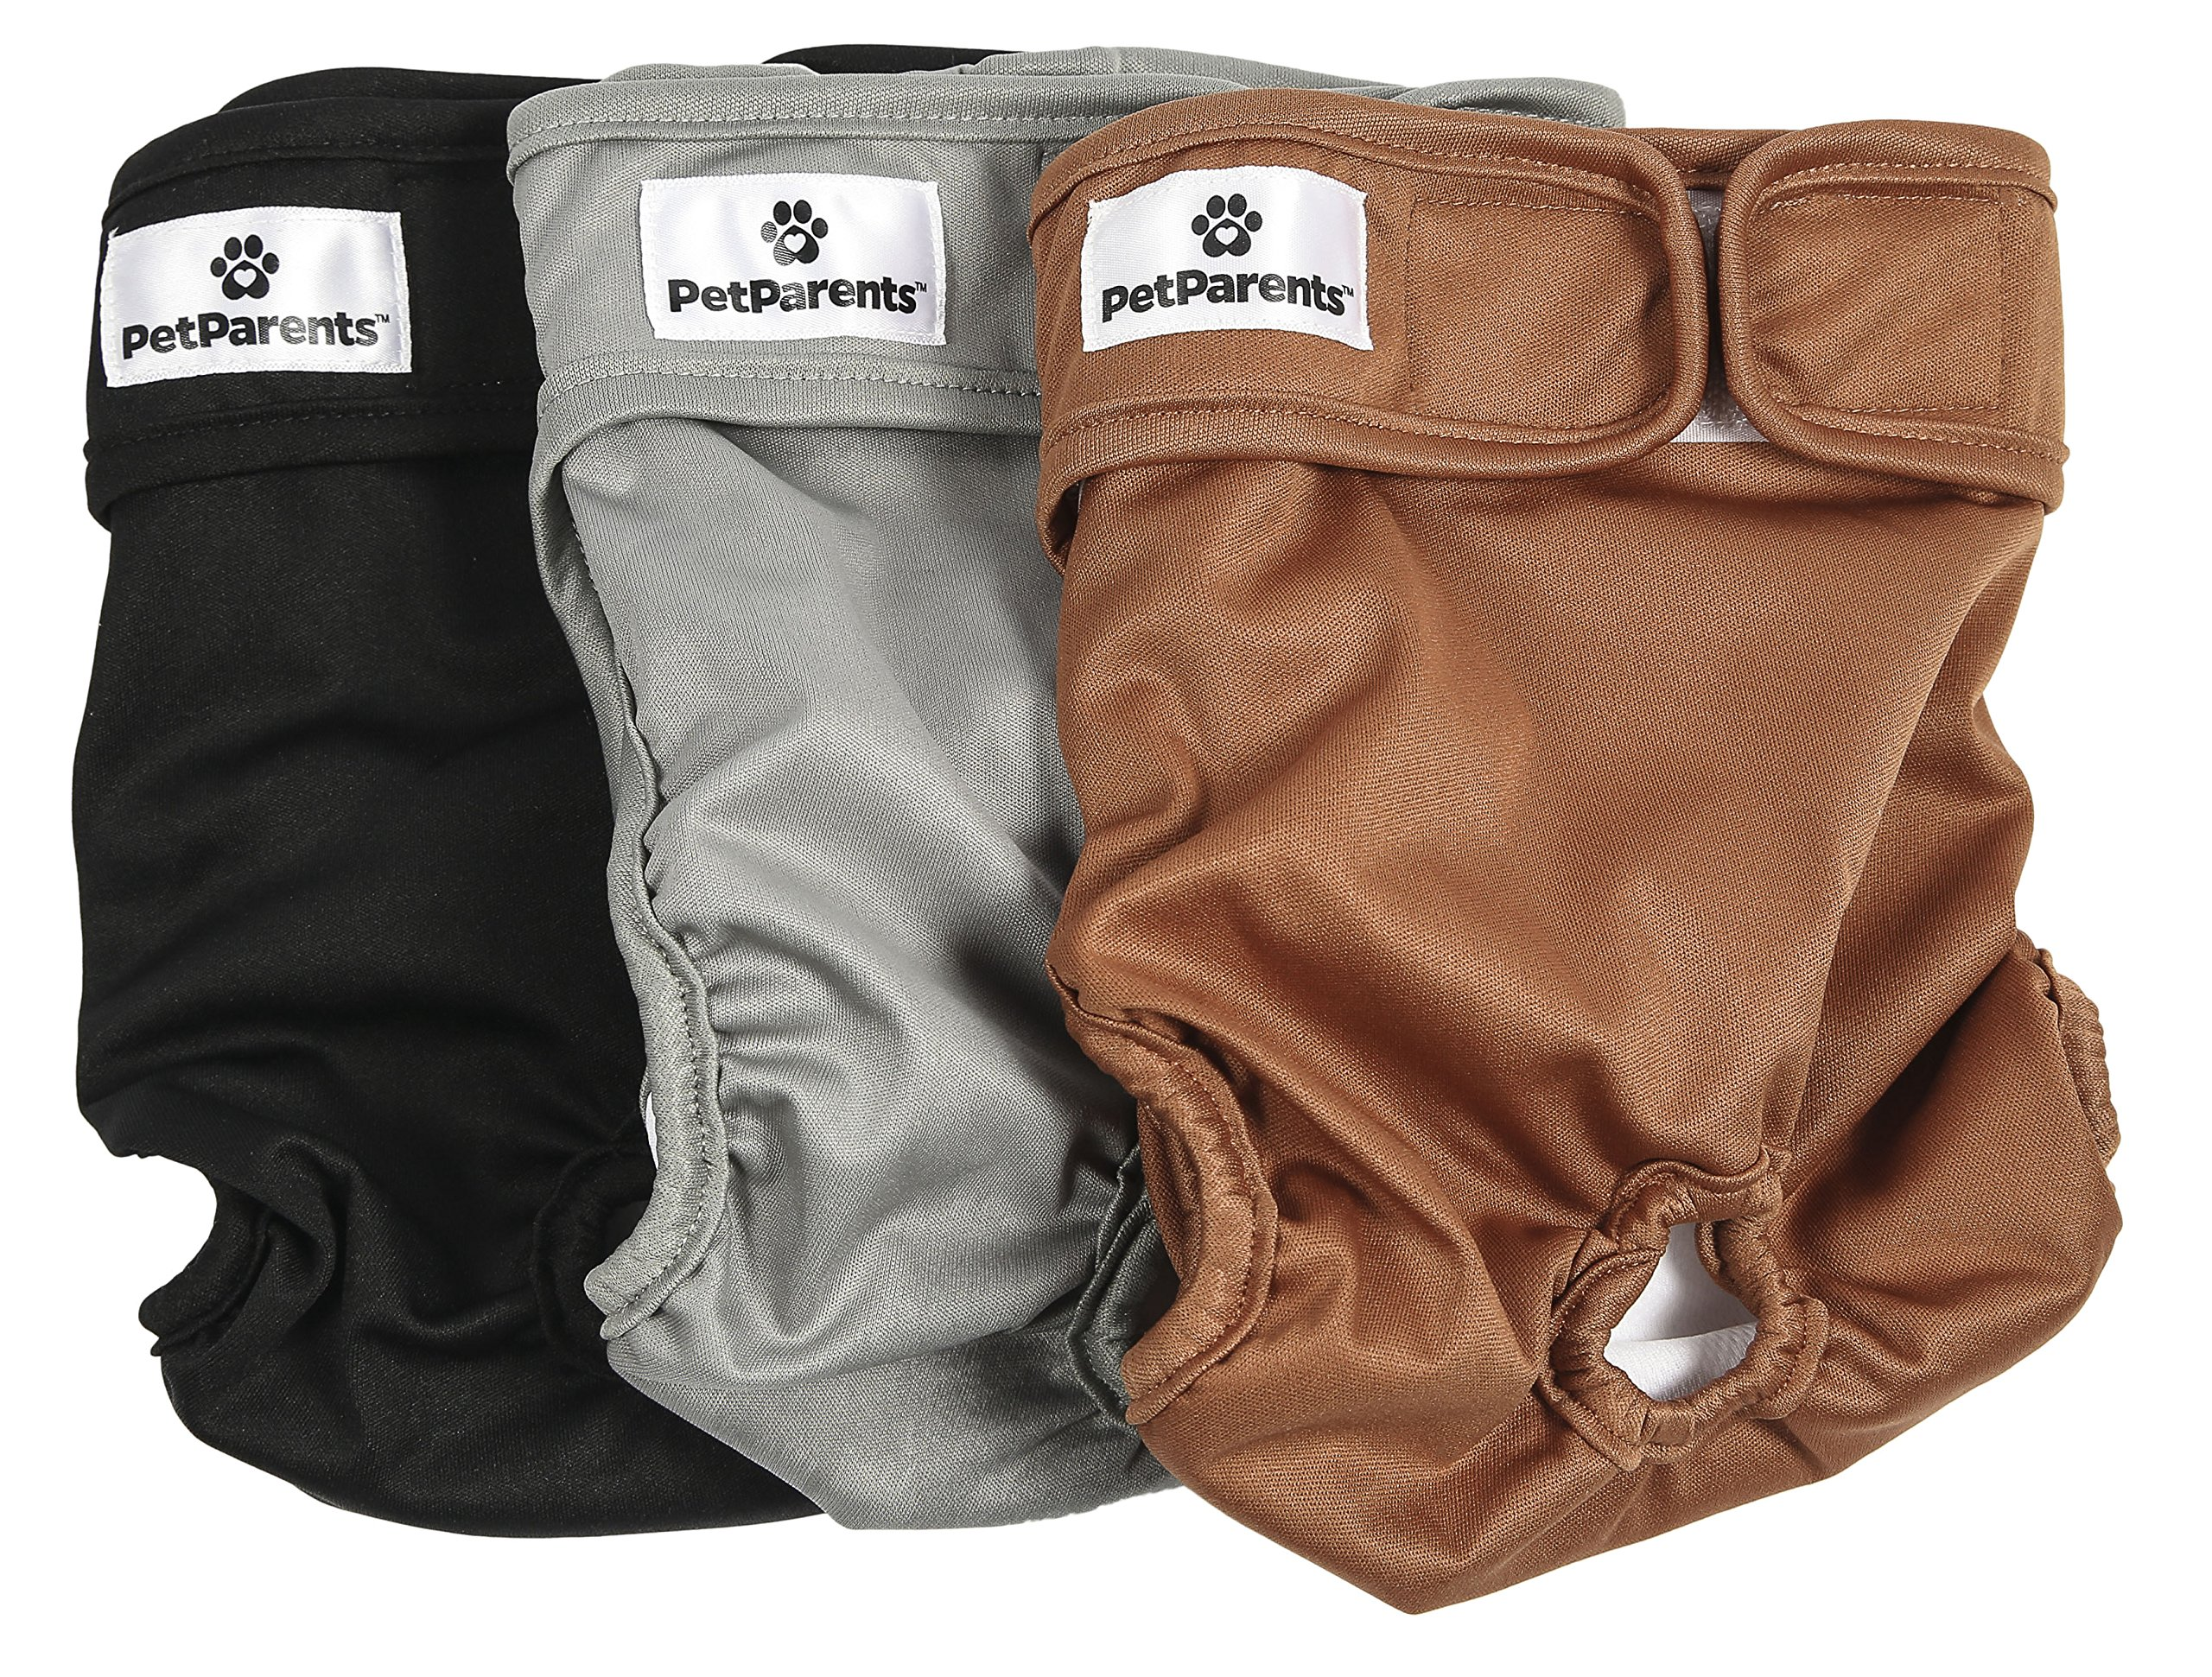 Pet Parents Washable Dog Diapers (3pack) of Doggie Diapers, Color: Natural, Size: Medium Dog Diapers